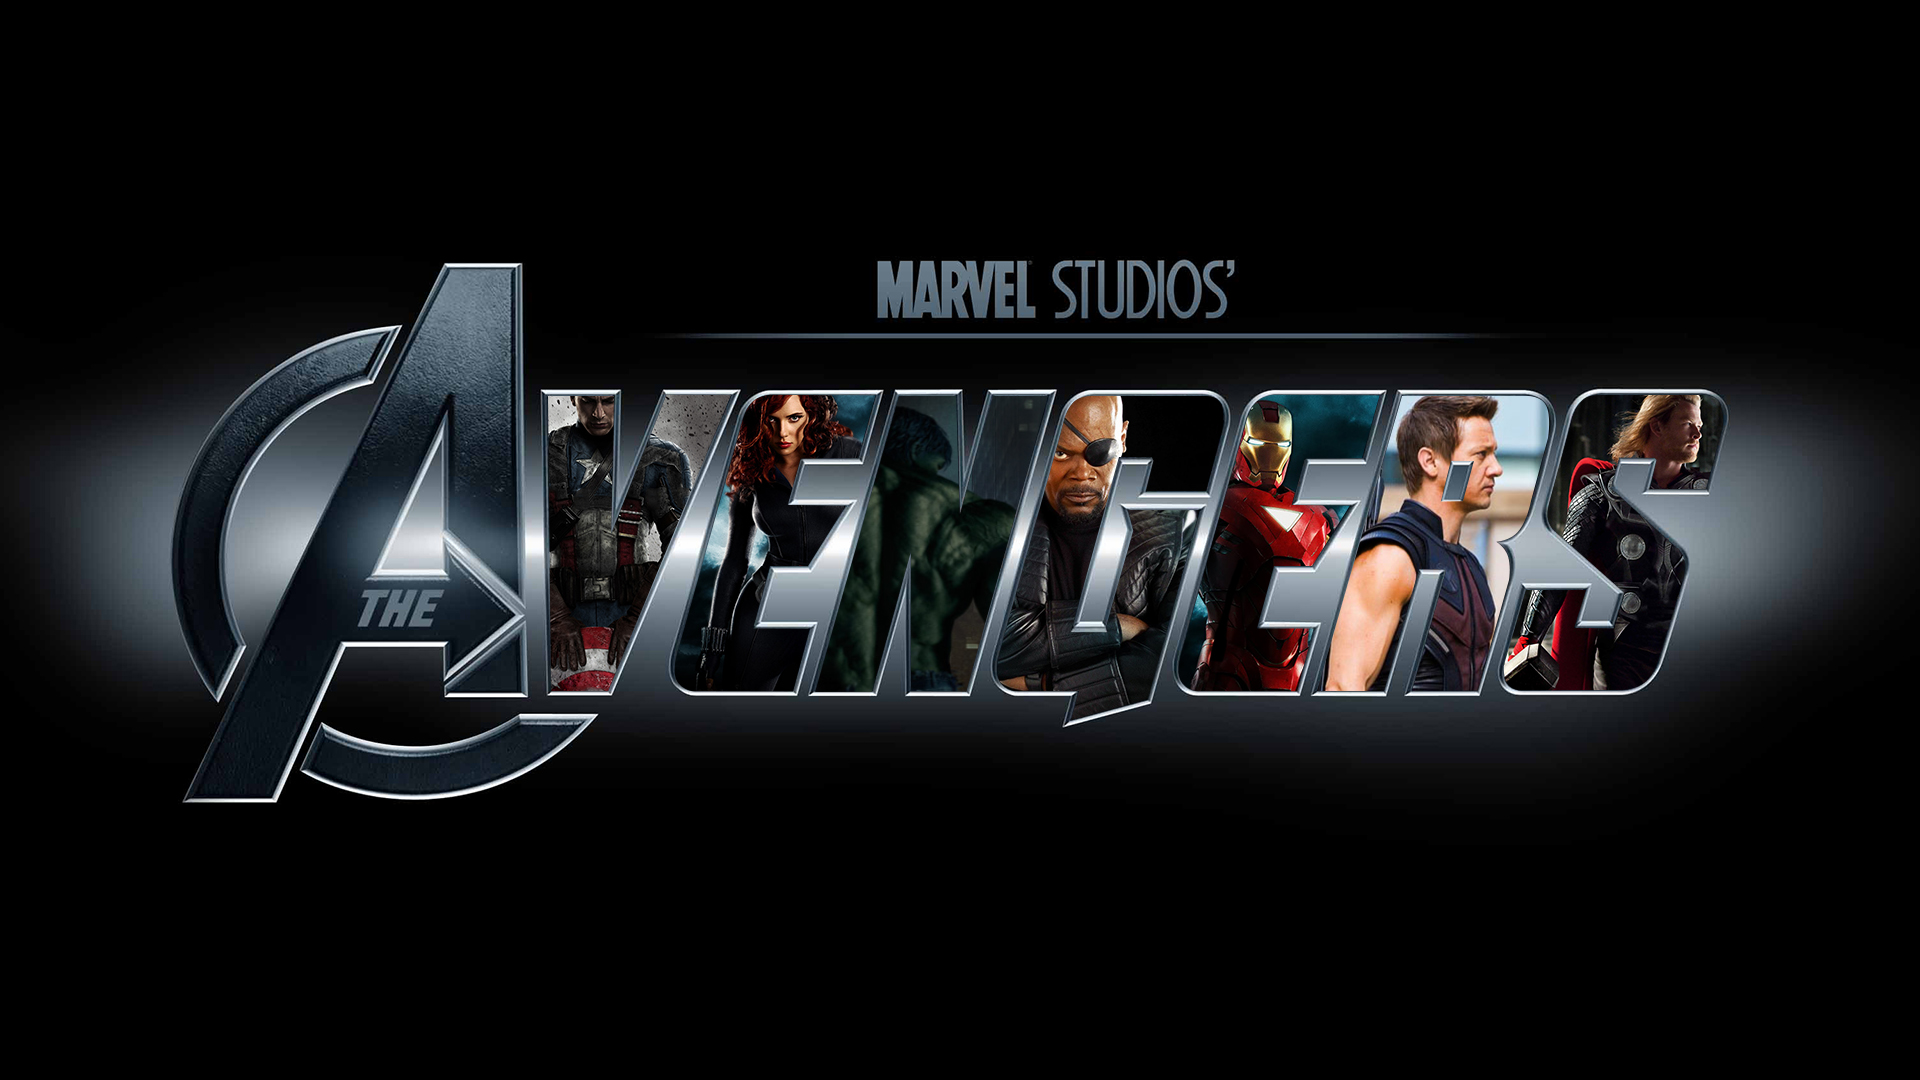 Avengers Wallpaper for Desktop : Wide Screen Wallpaper 1080p,2K,4K ...